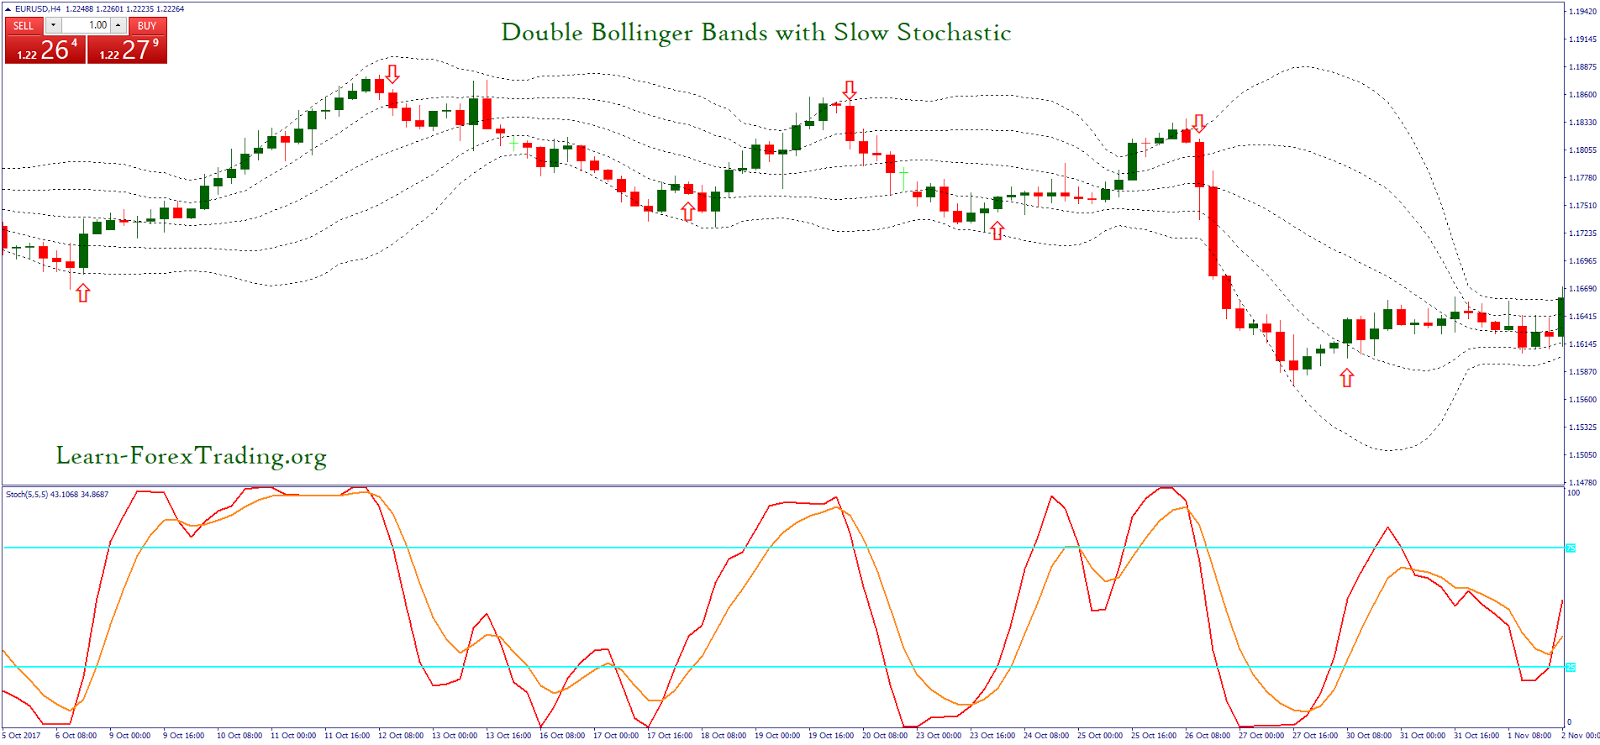 Trading with double bollinger bands